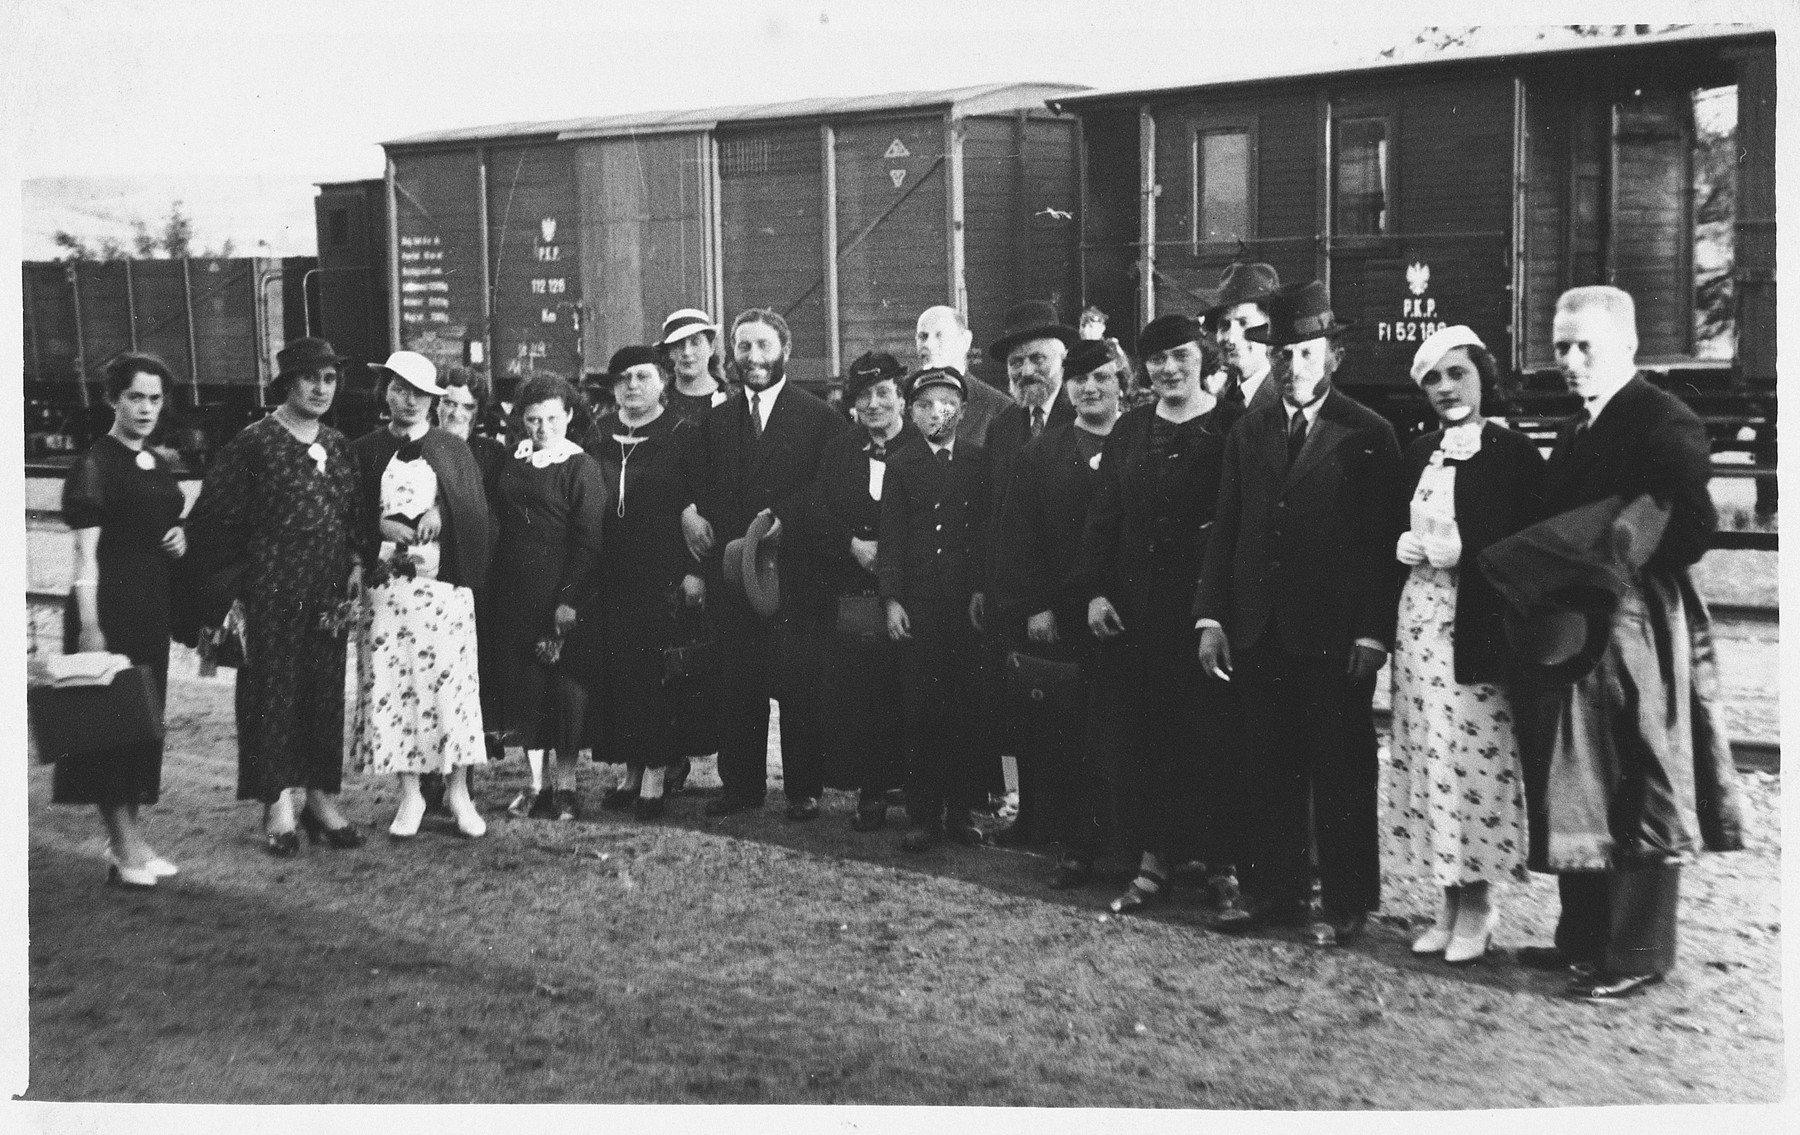 Group portrait of relatives and friends of the Jam family in front of a train.